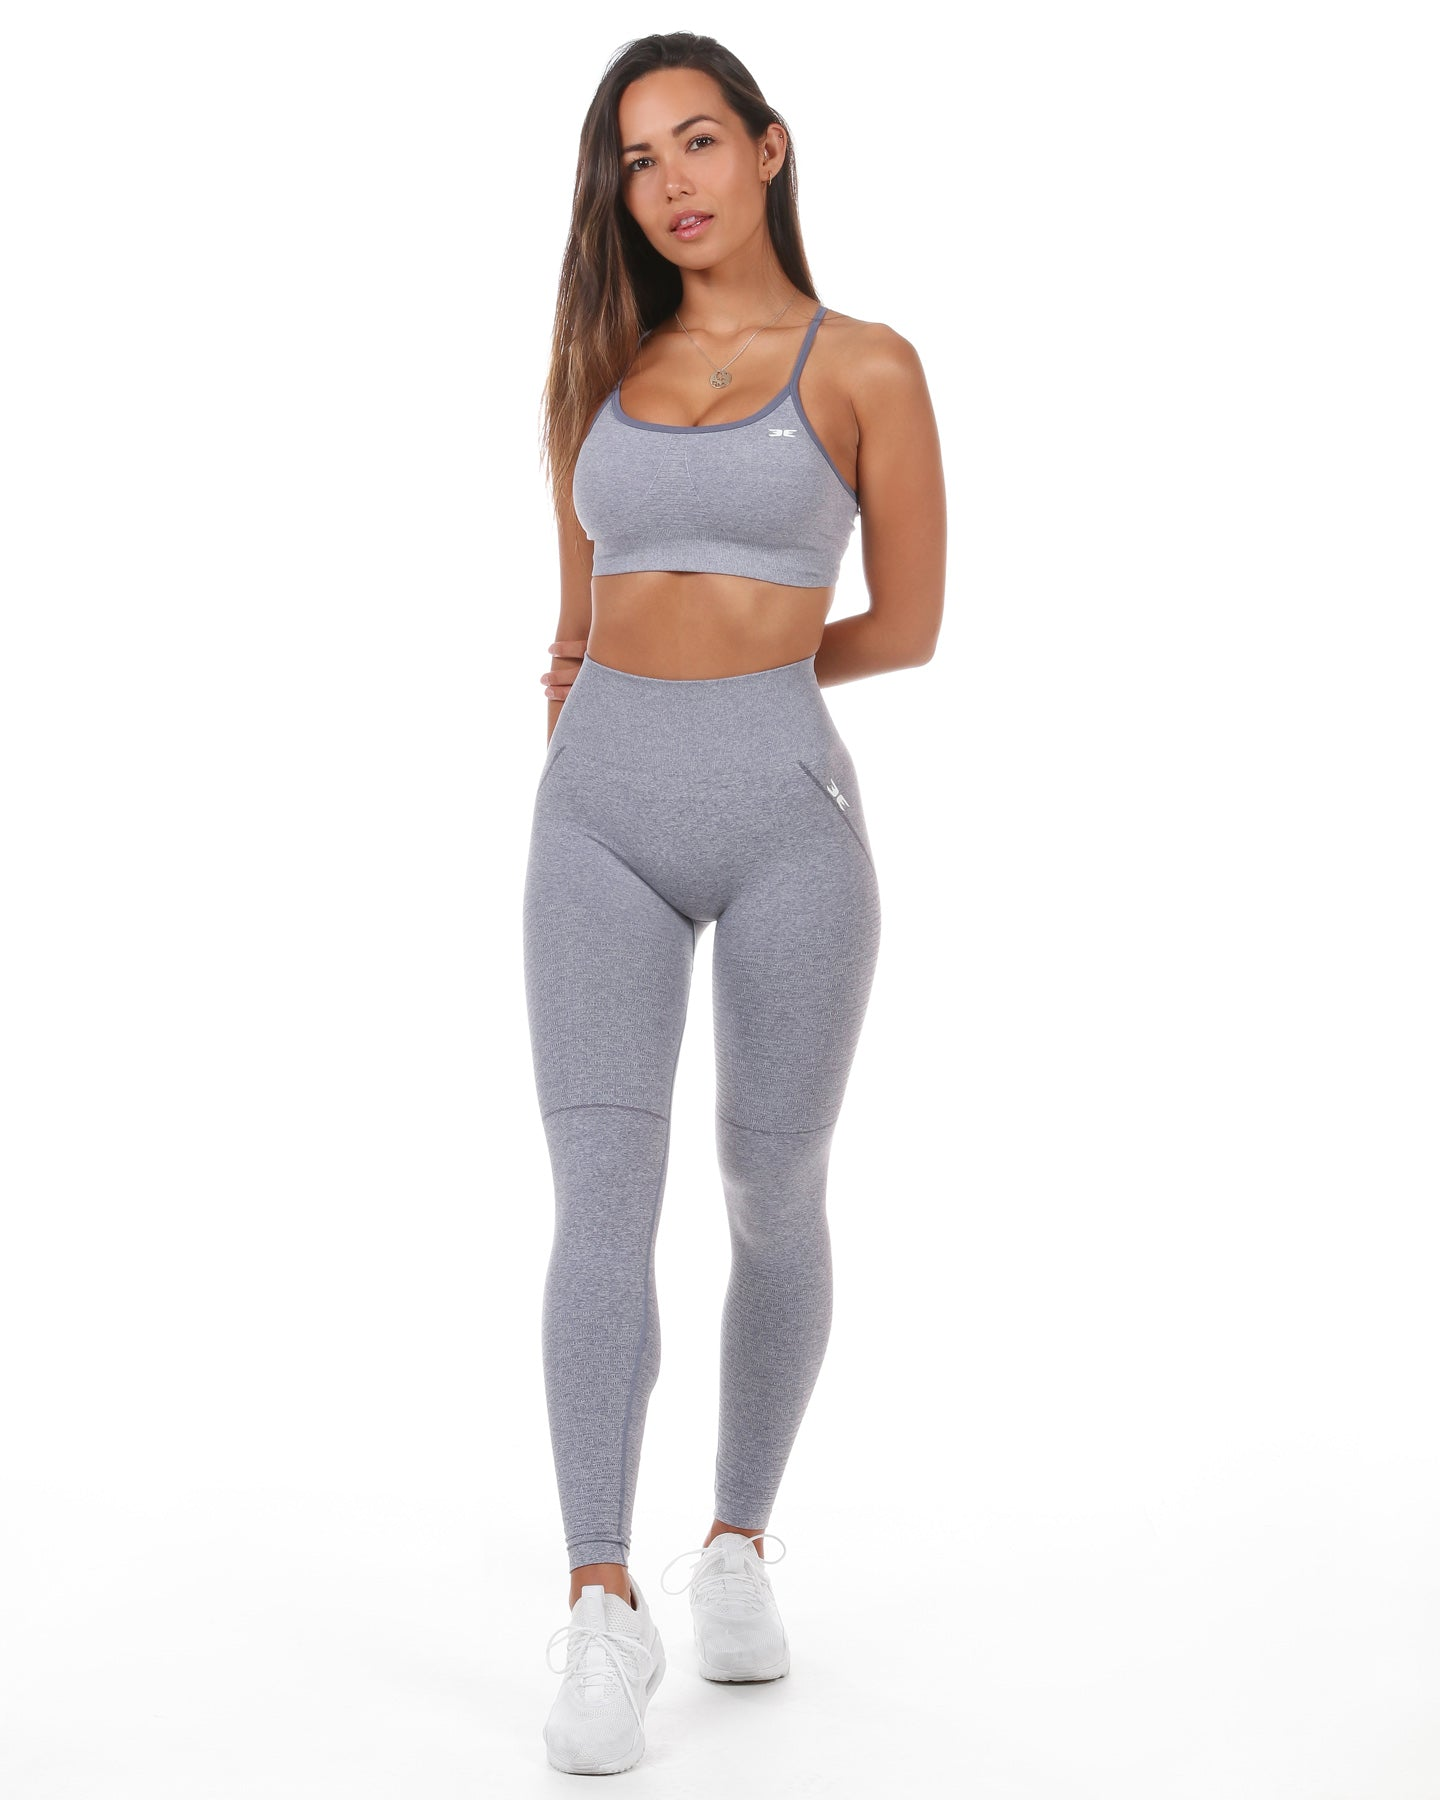 Elite Seamless Bra - Grey Mist